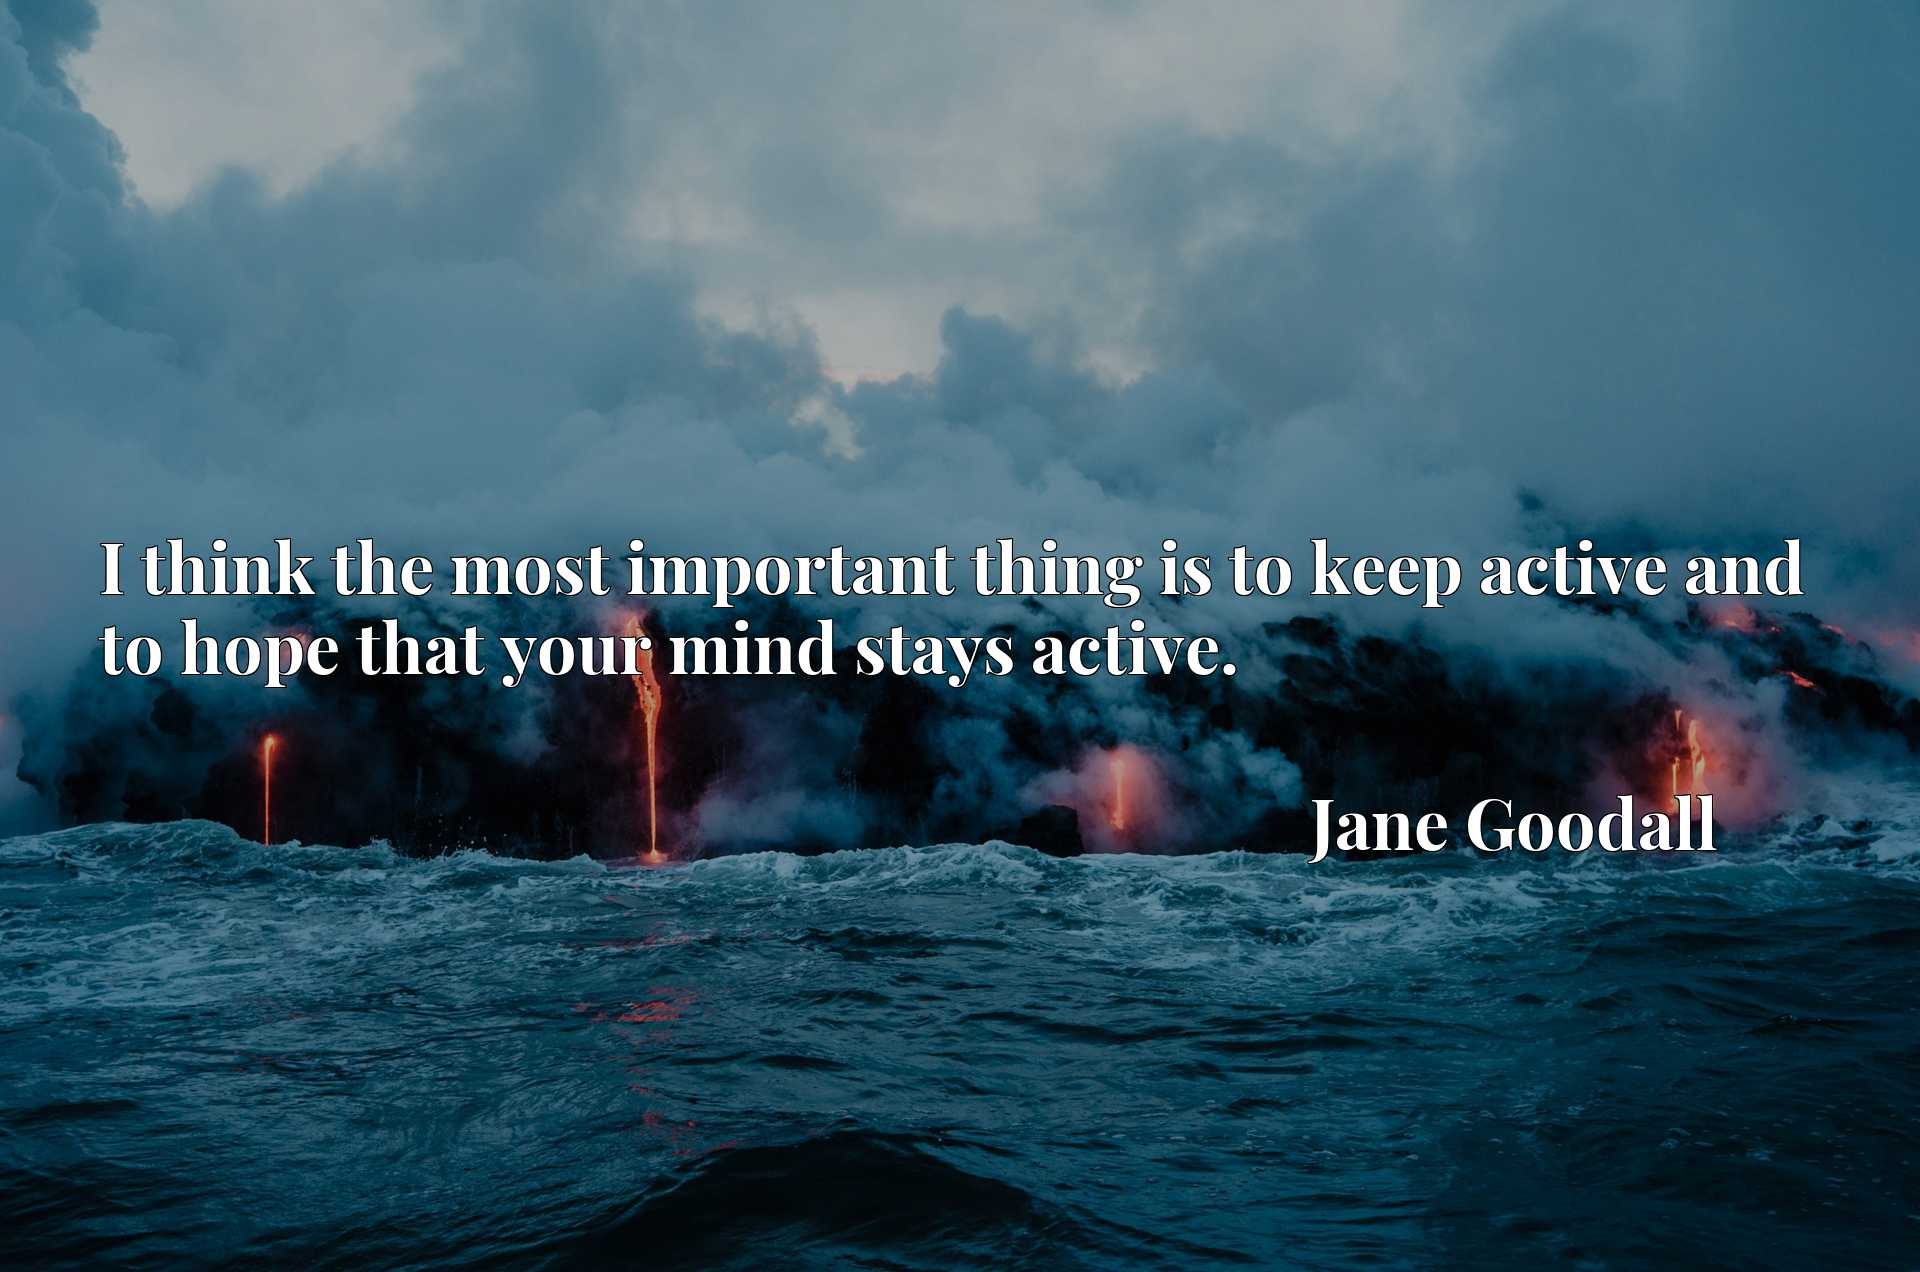 I think the most important thing is to keep active and to hope that your mind stays active.